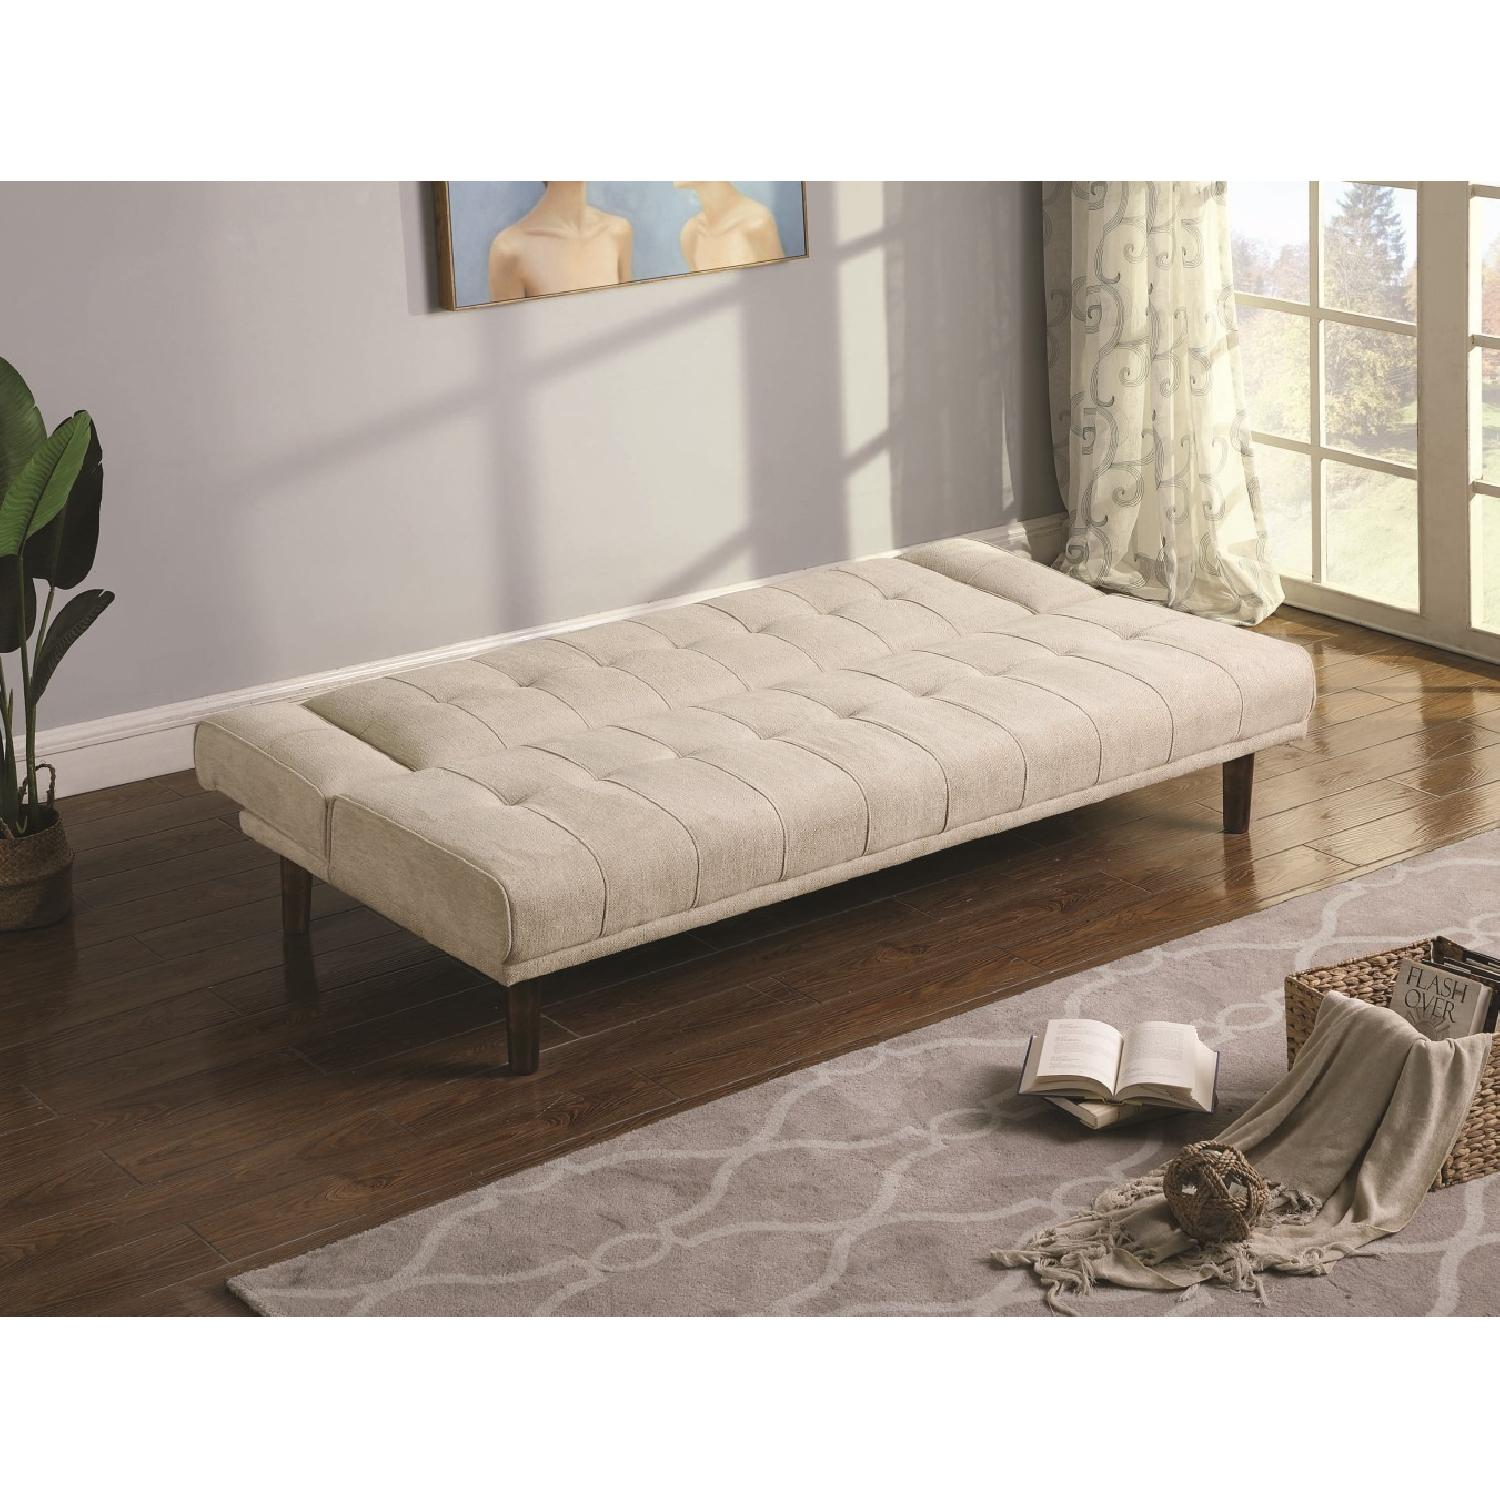 Sofabed w/ Cupholder Armrests in Beige Chenille Fabric - image-5